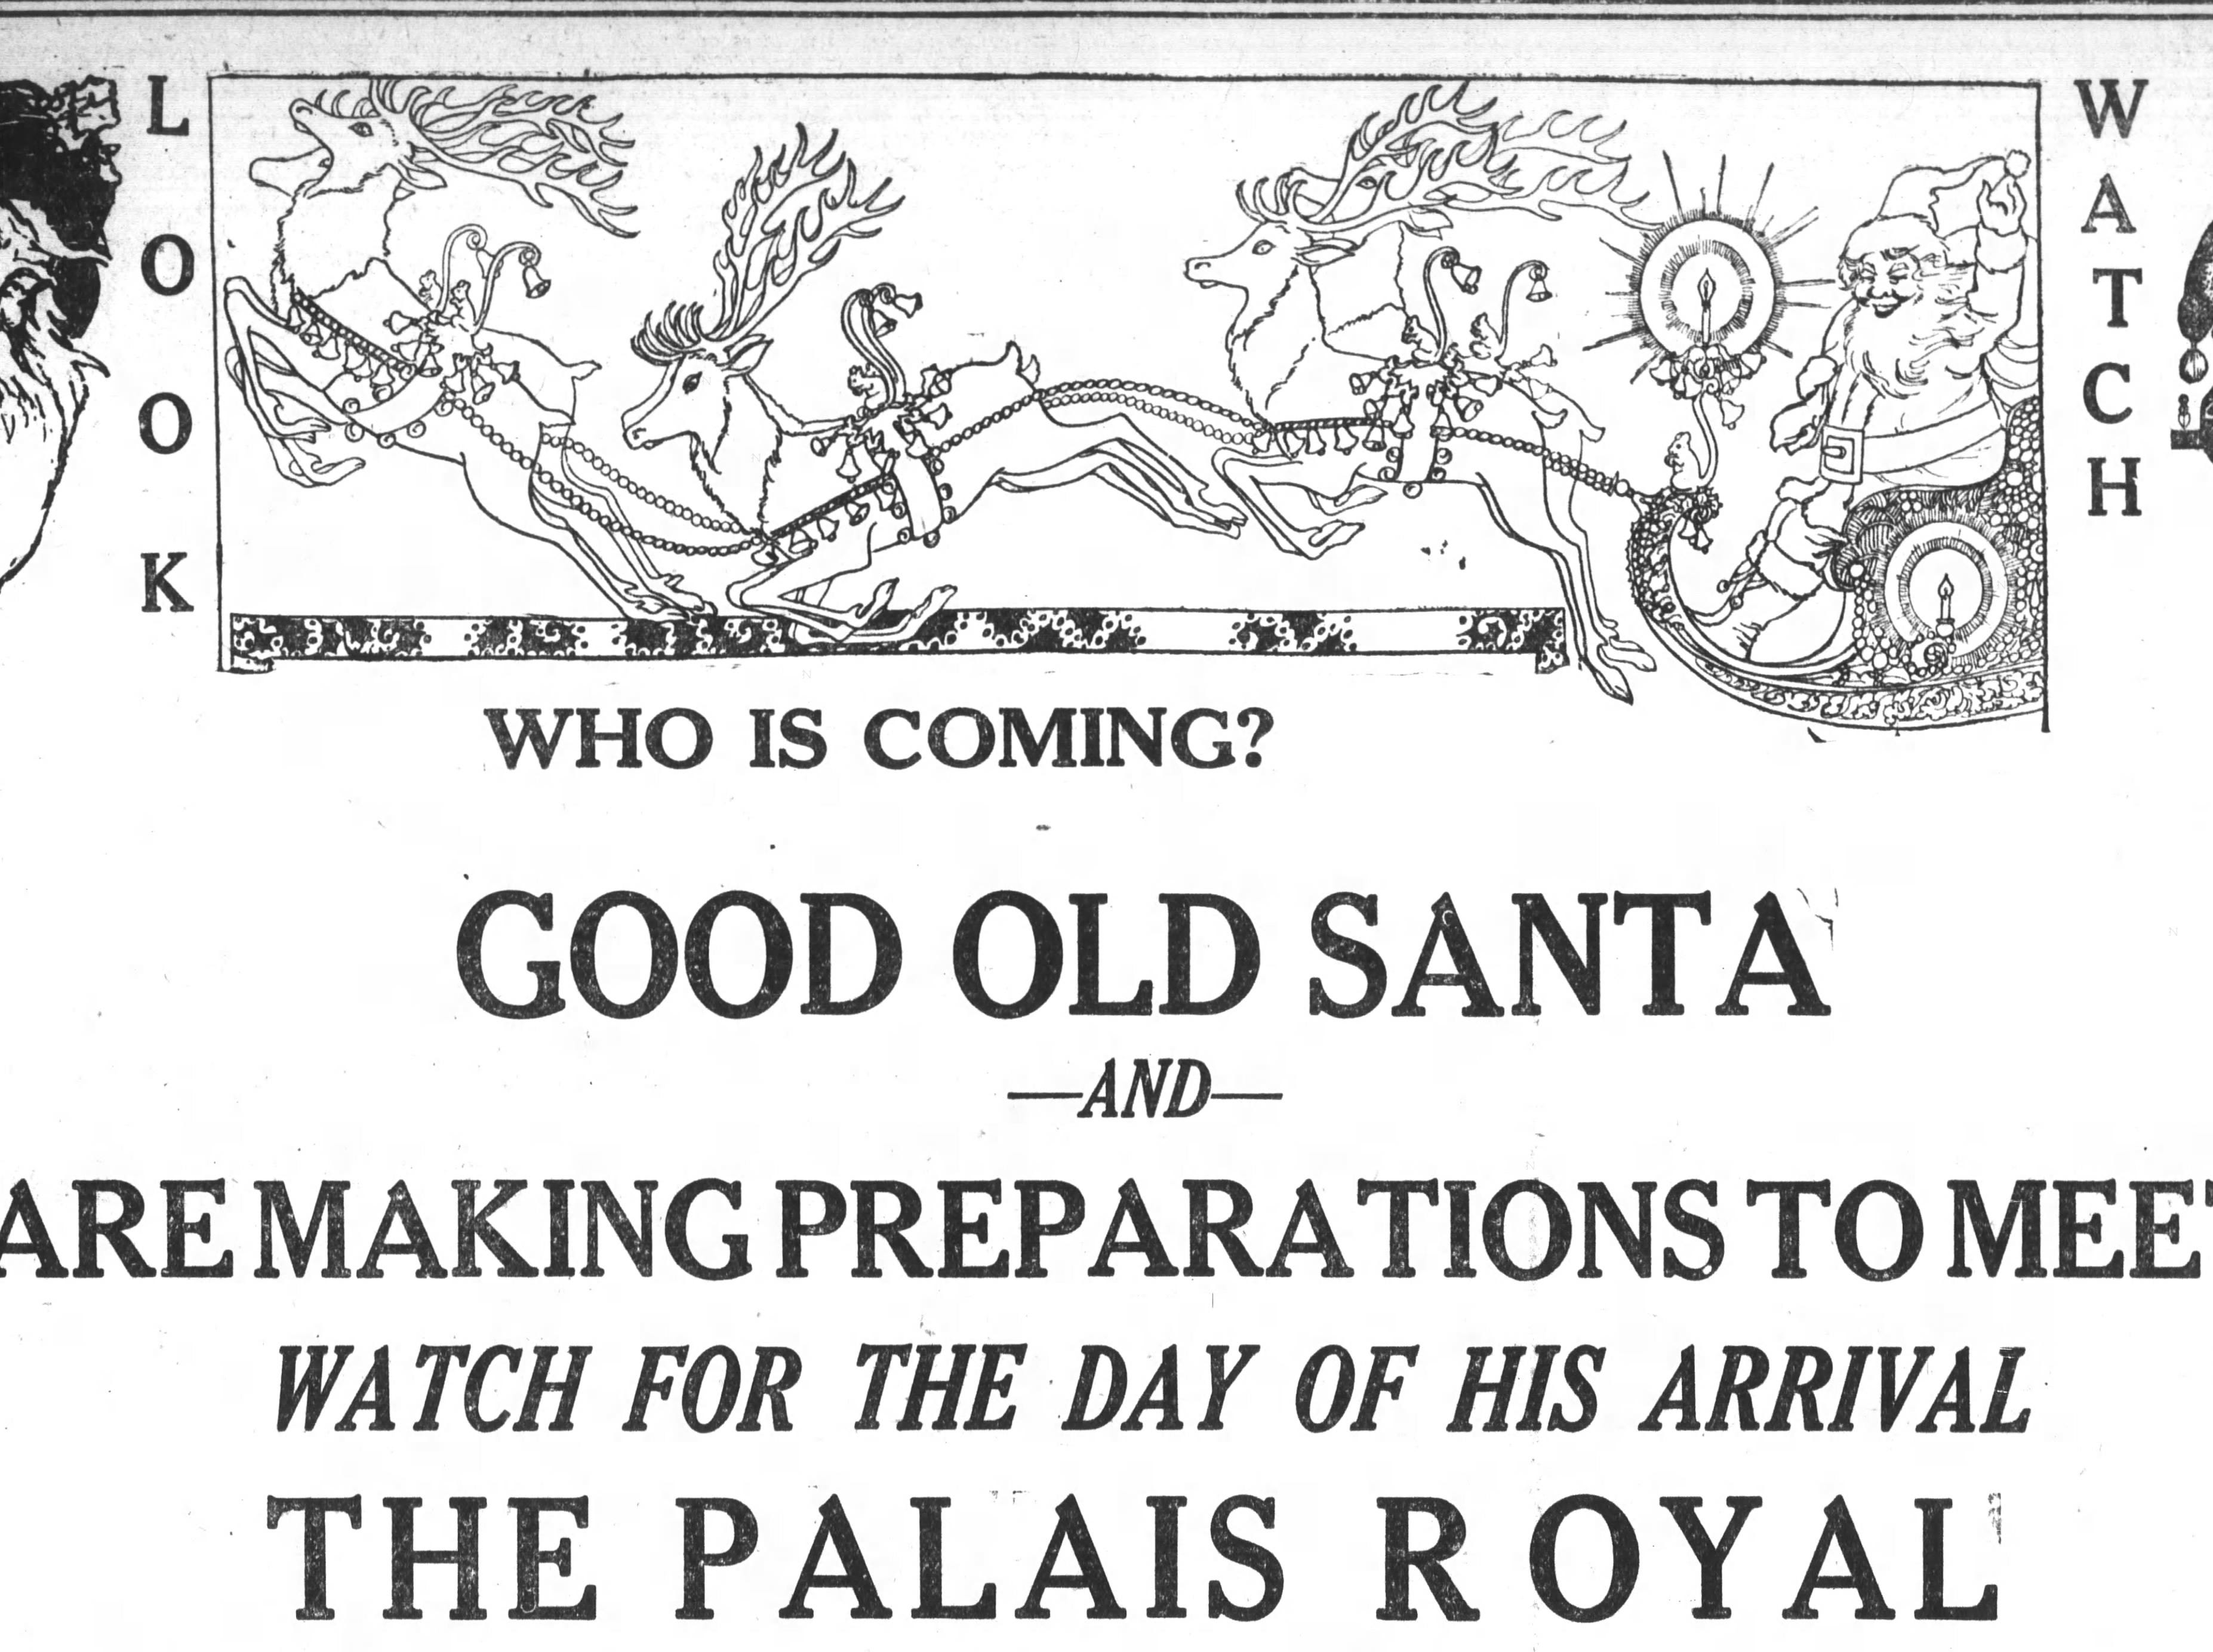 A 1921 advertisement in the Asheville Citizen detailing an upcoming visit from Santa Claus at The Palais Royal, a former store in downtown Asheville.